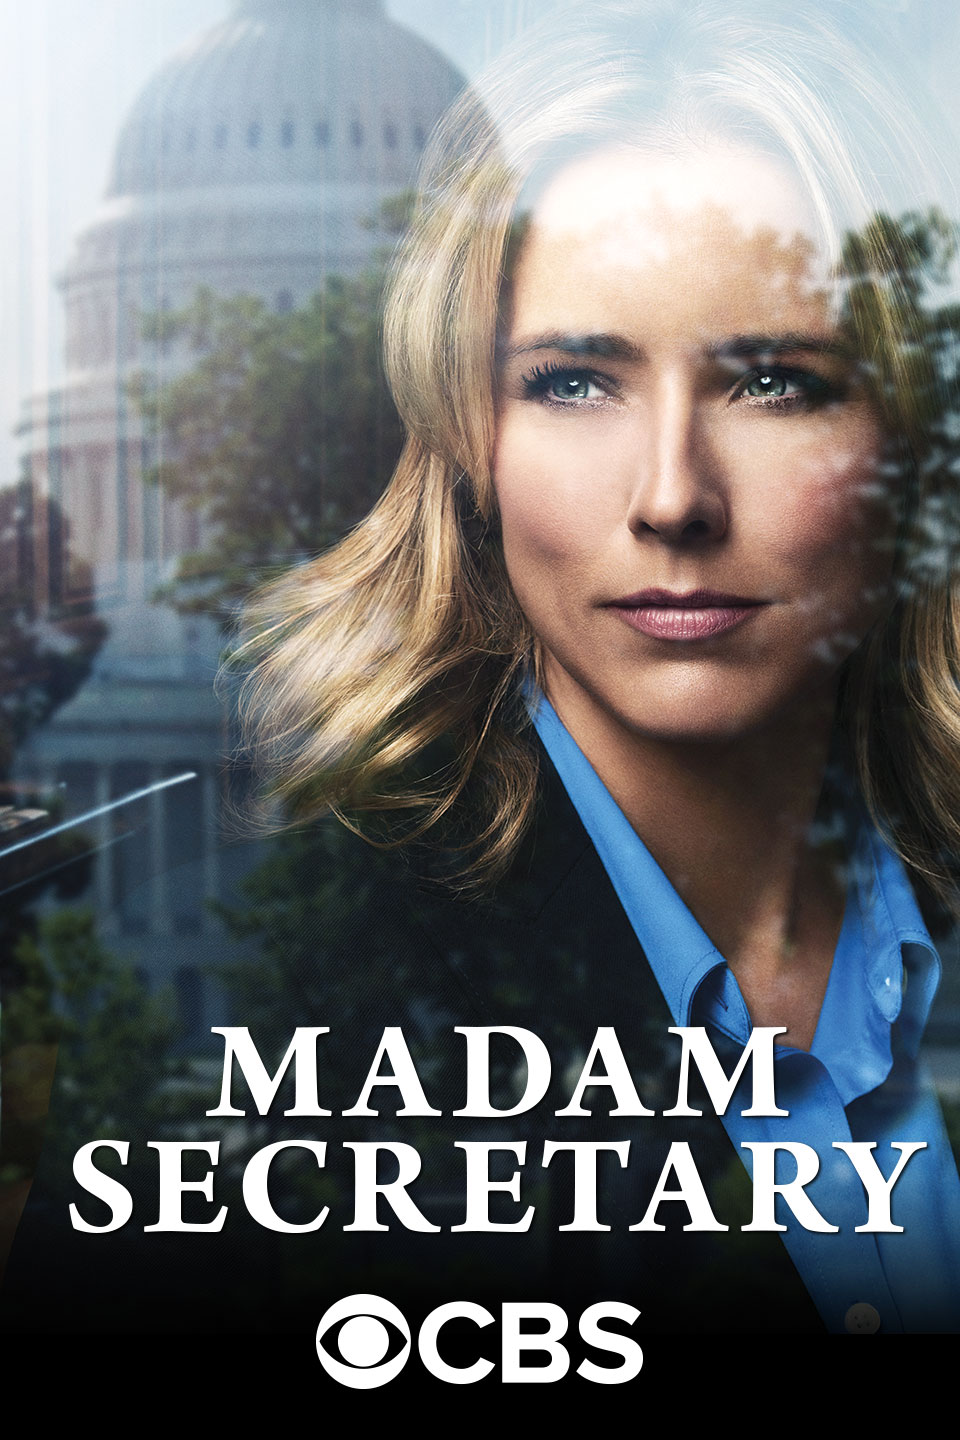 Madam.Secretary.S06E06.HDTV.x264-KILLERS